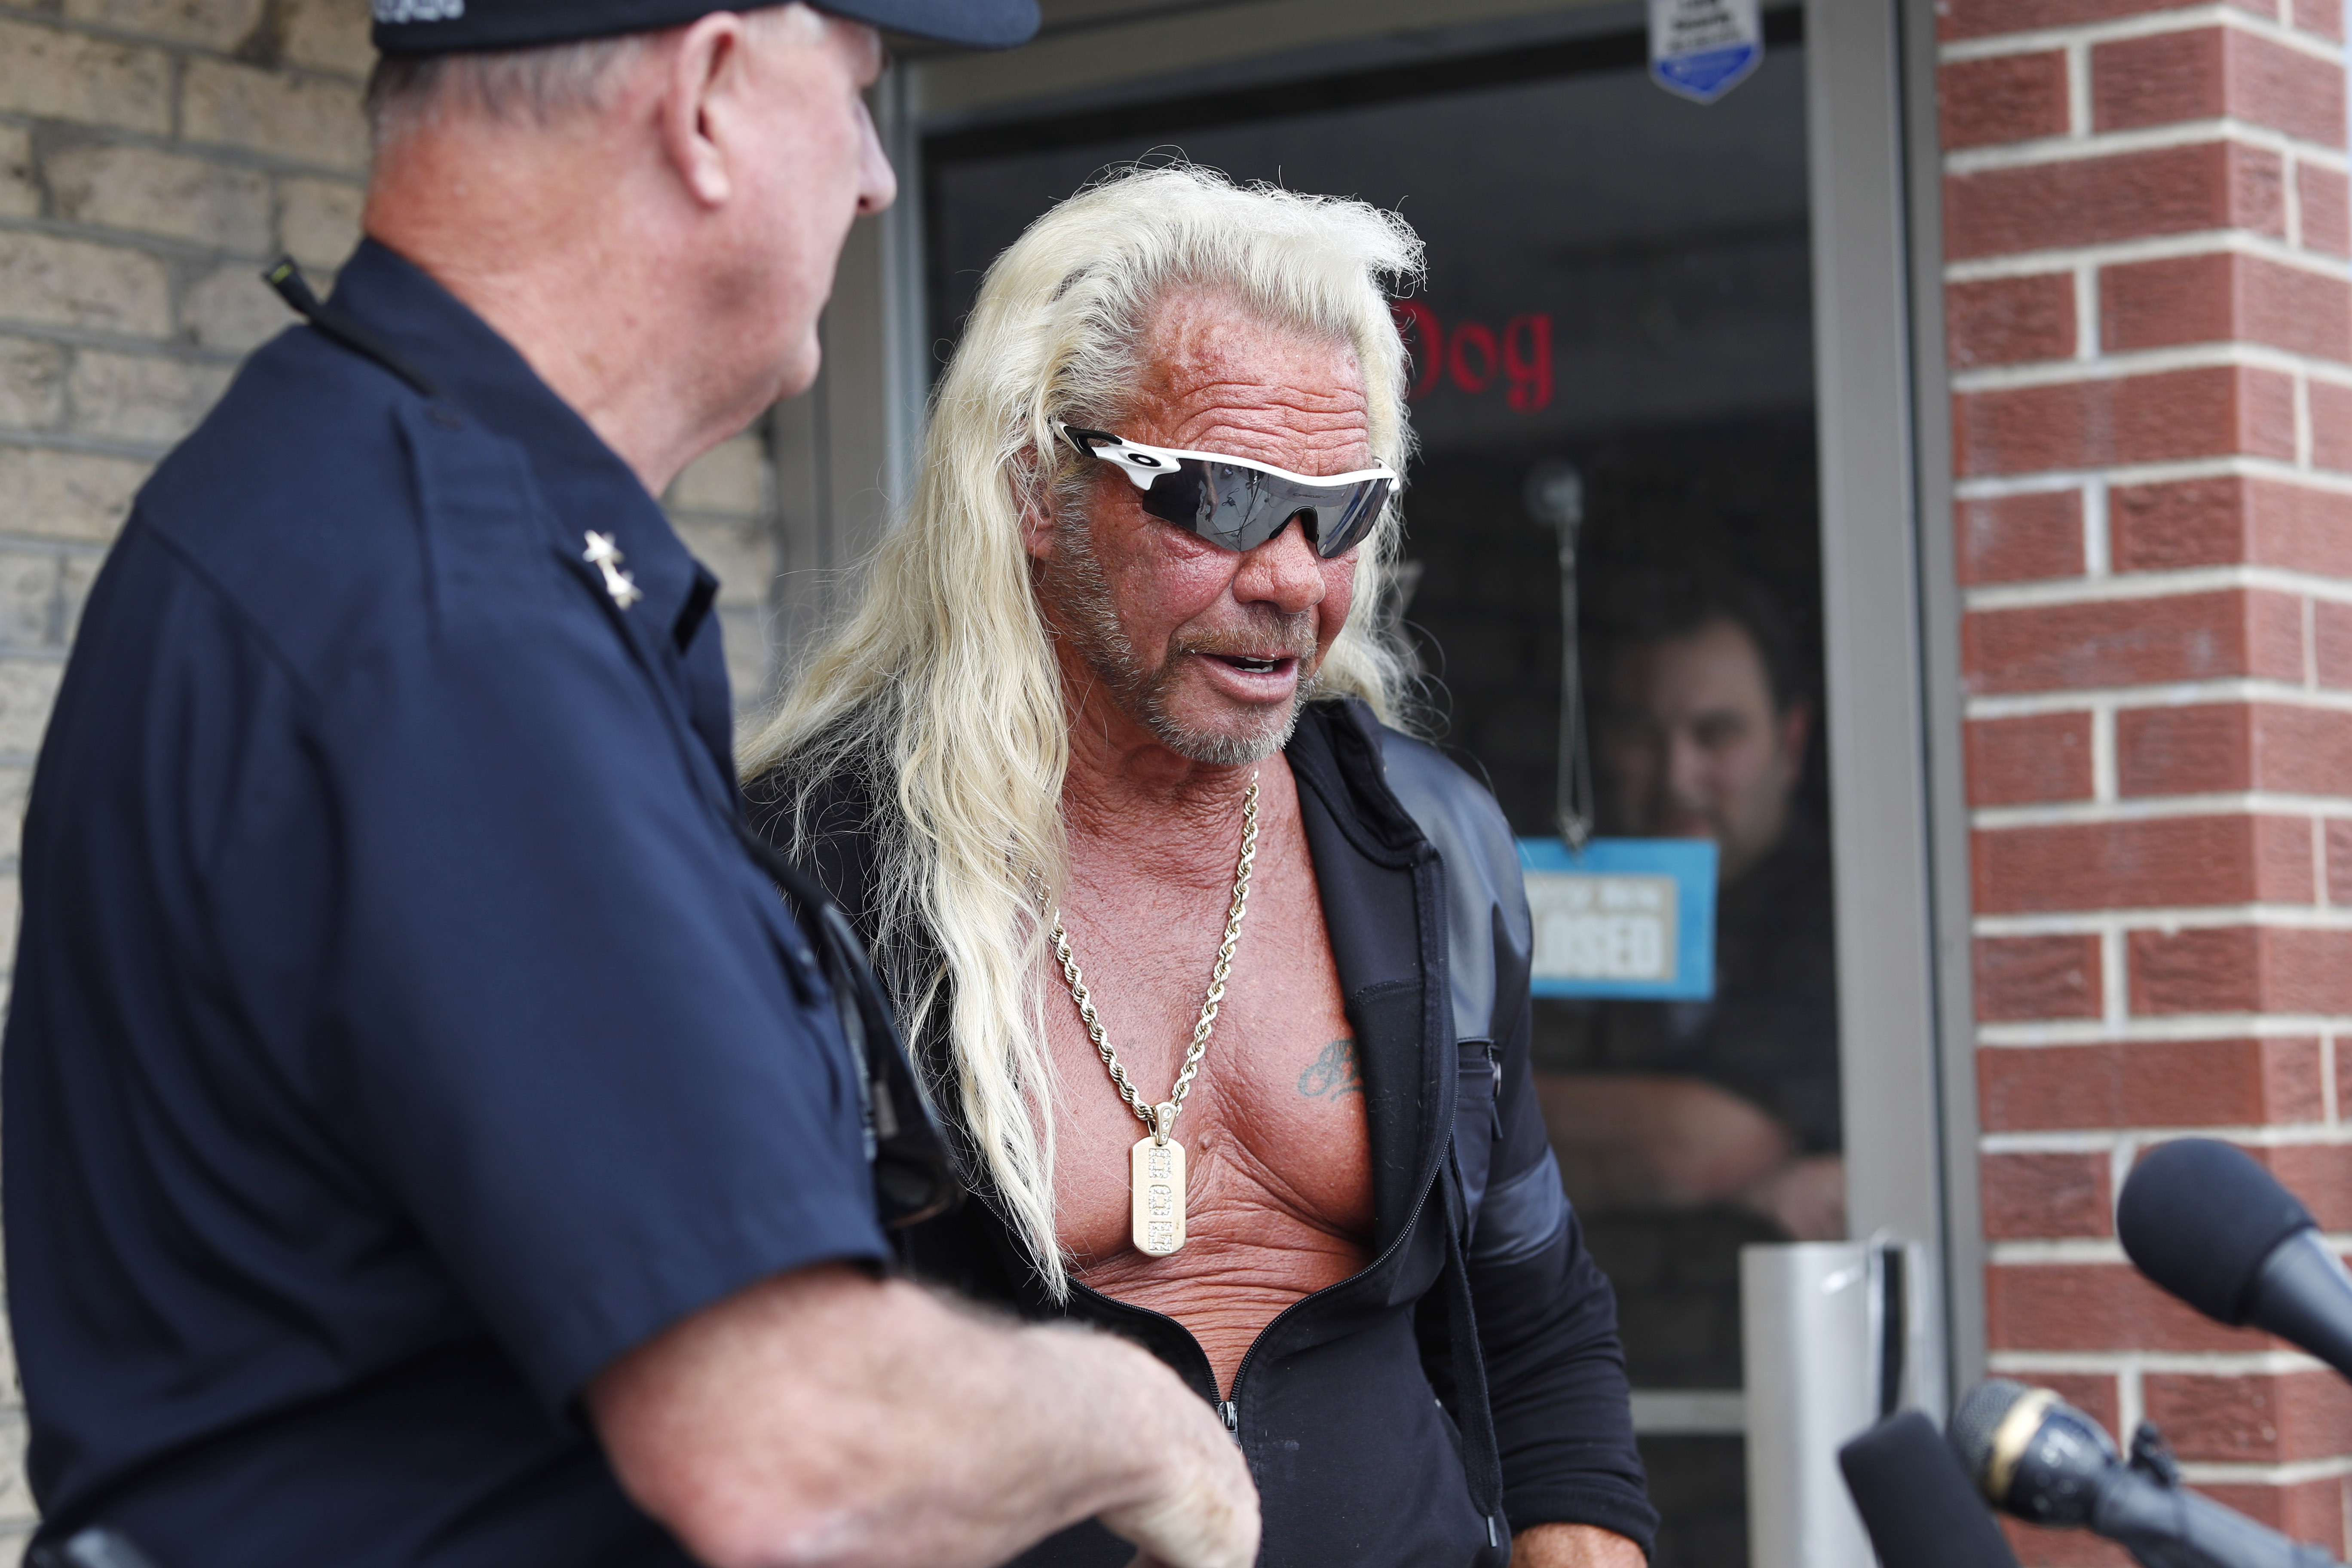 Duane Dog Chapman urges burglary suspect to surrender